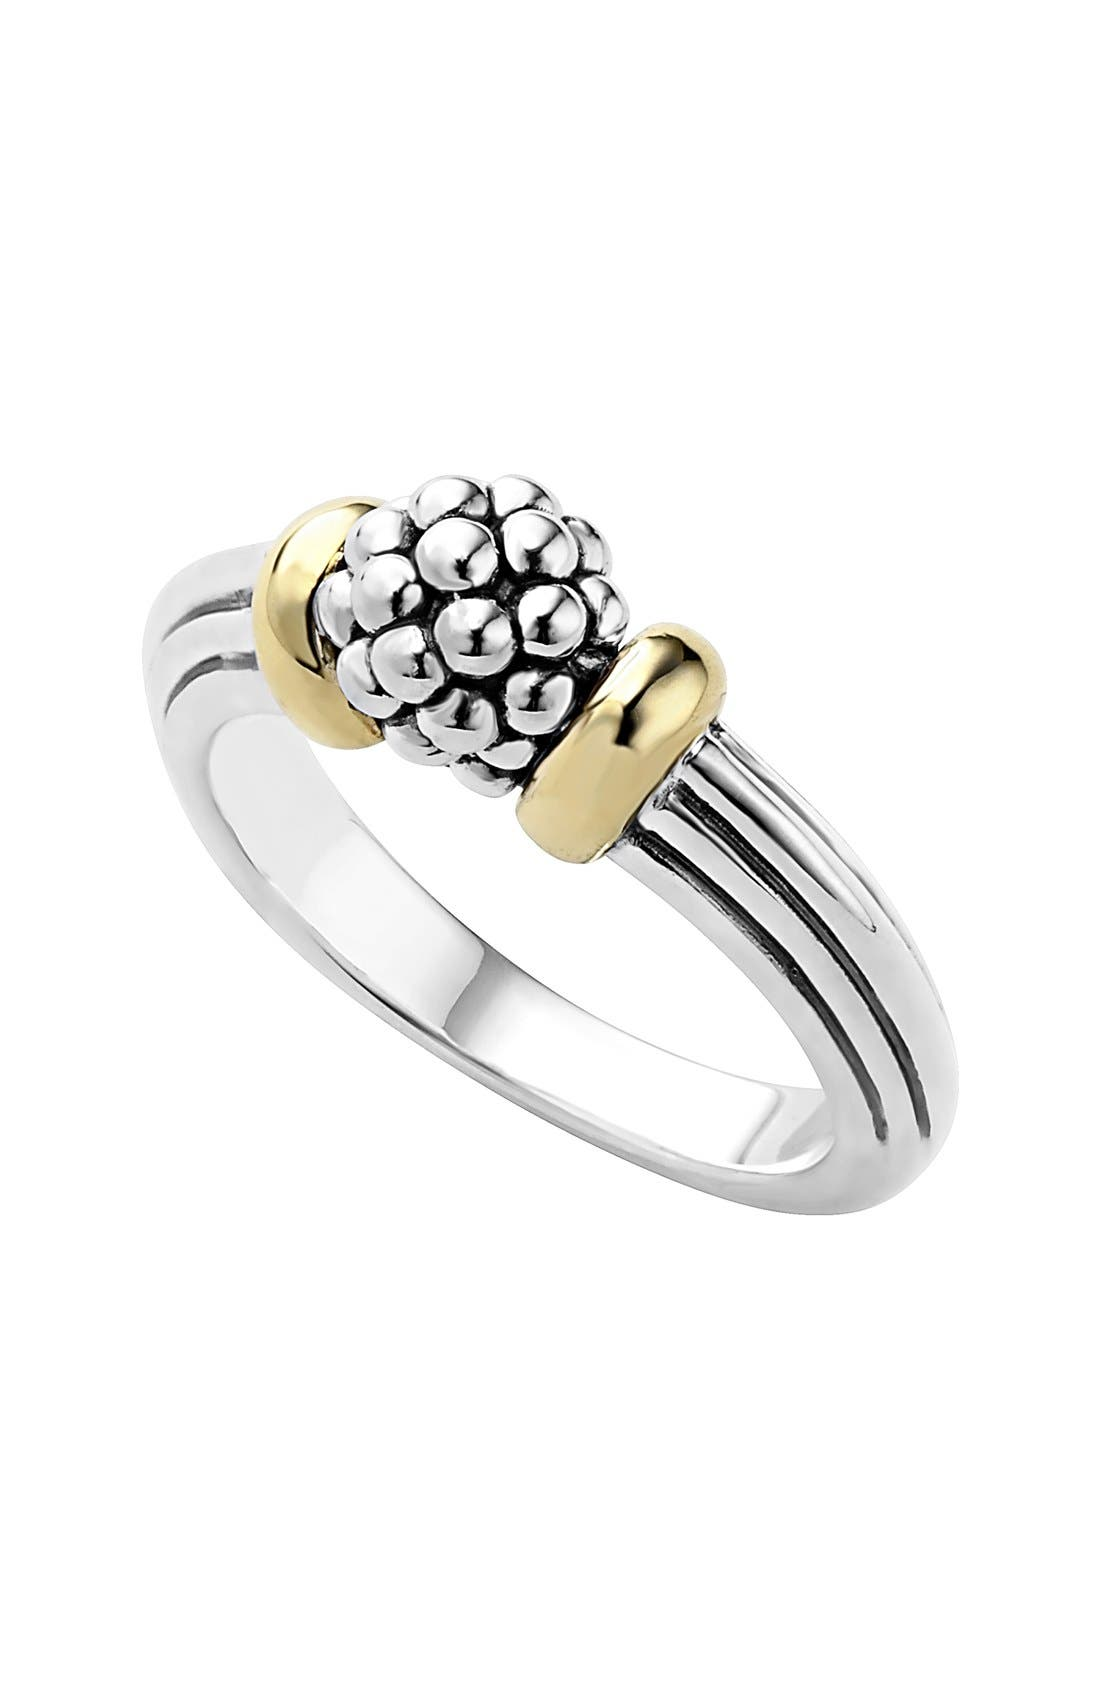 LAGOS 'Caviar Forever' Small Dome Ring